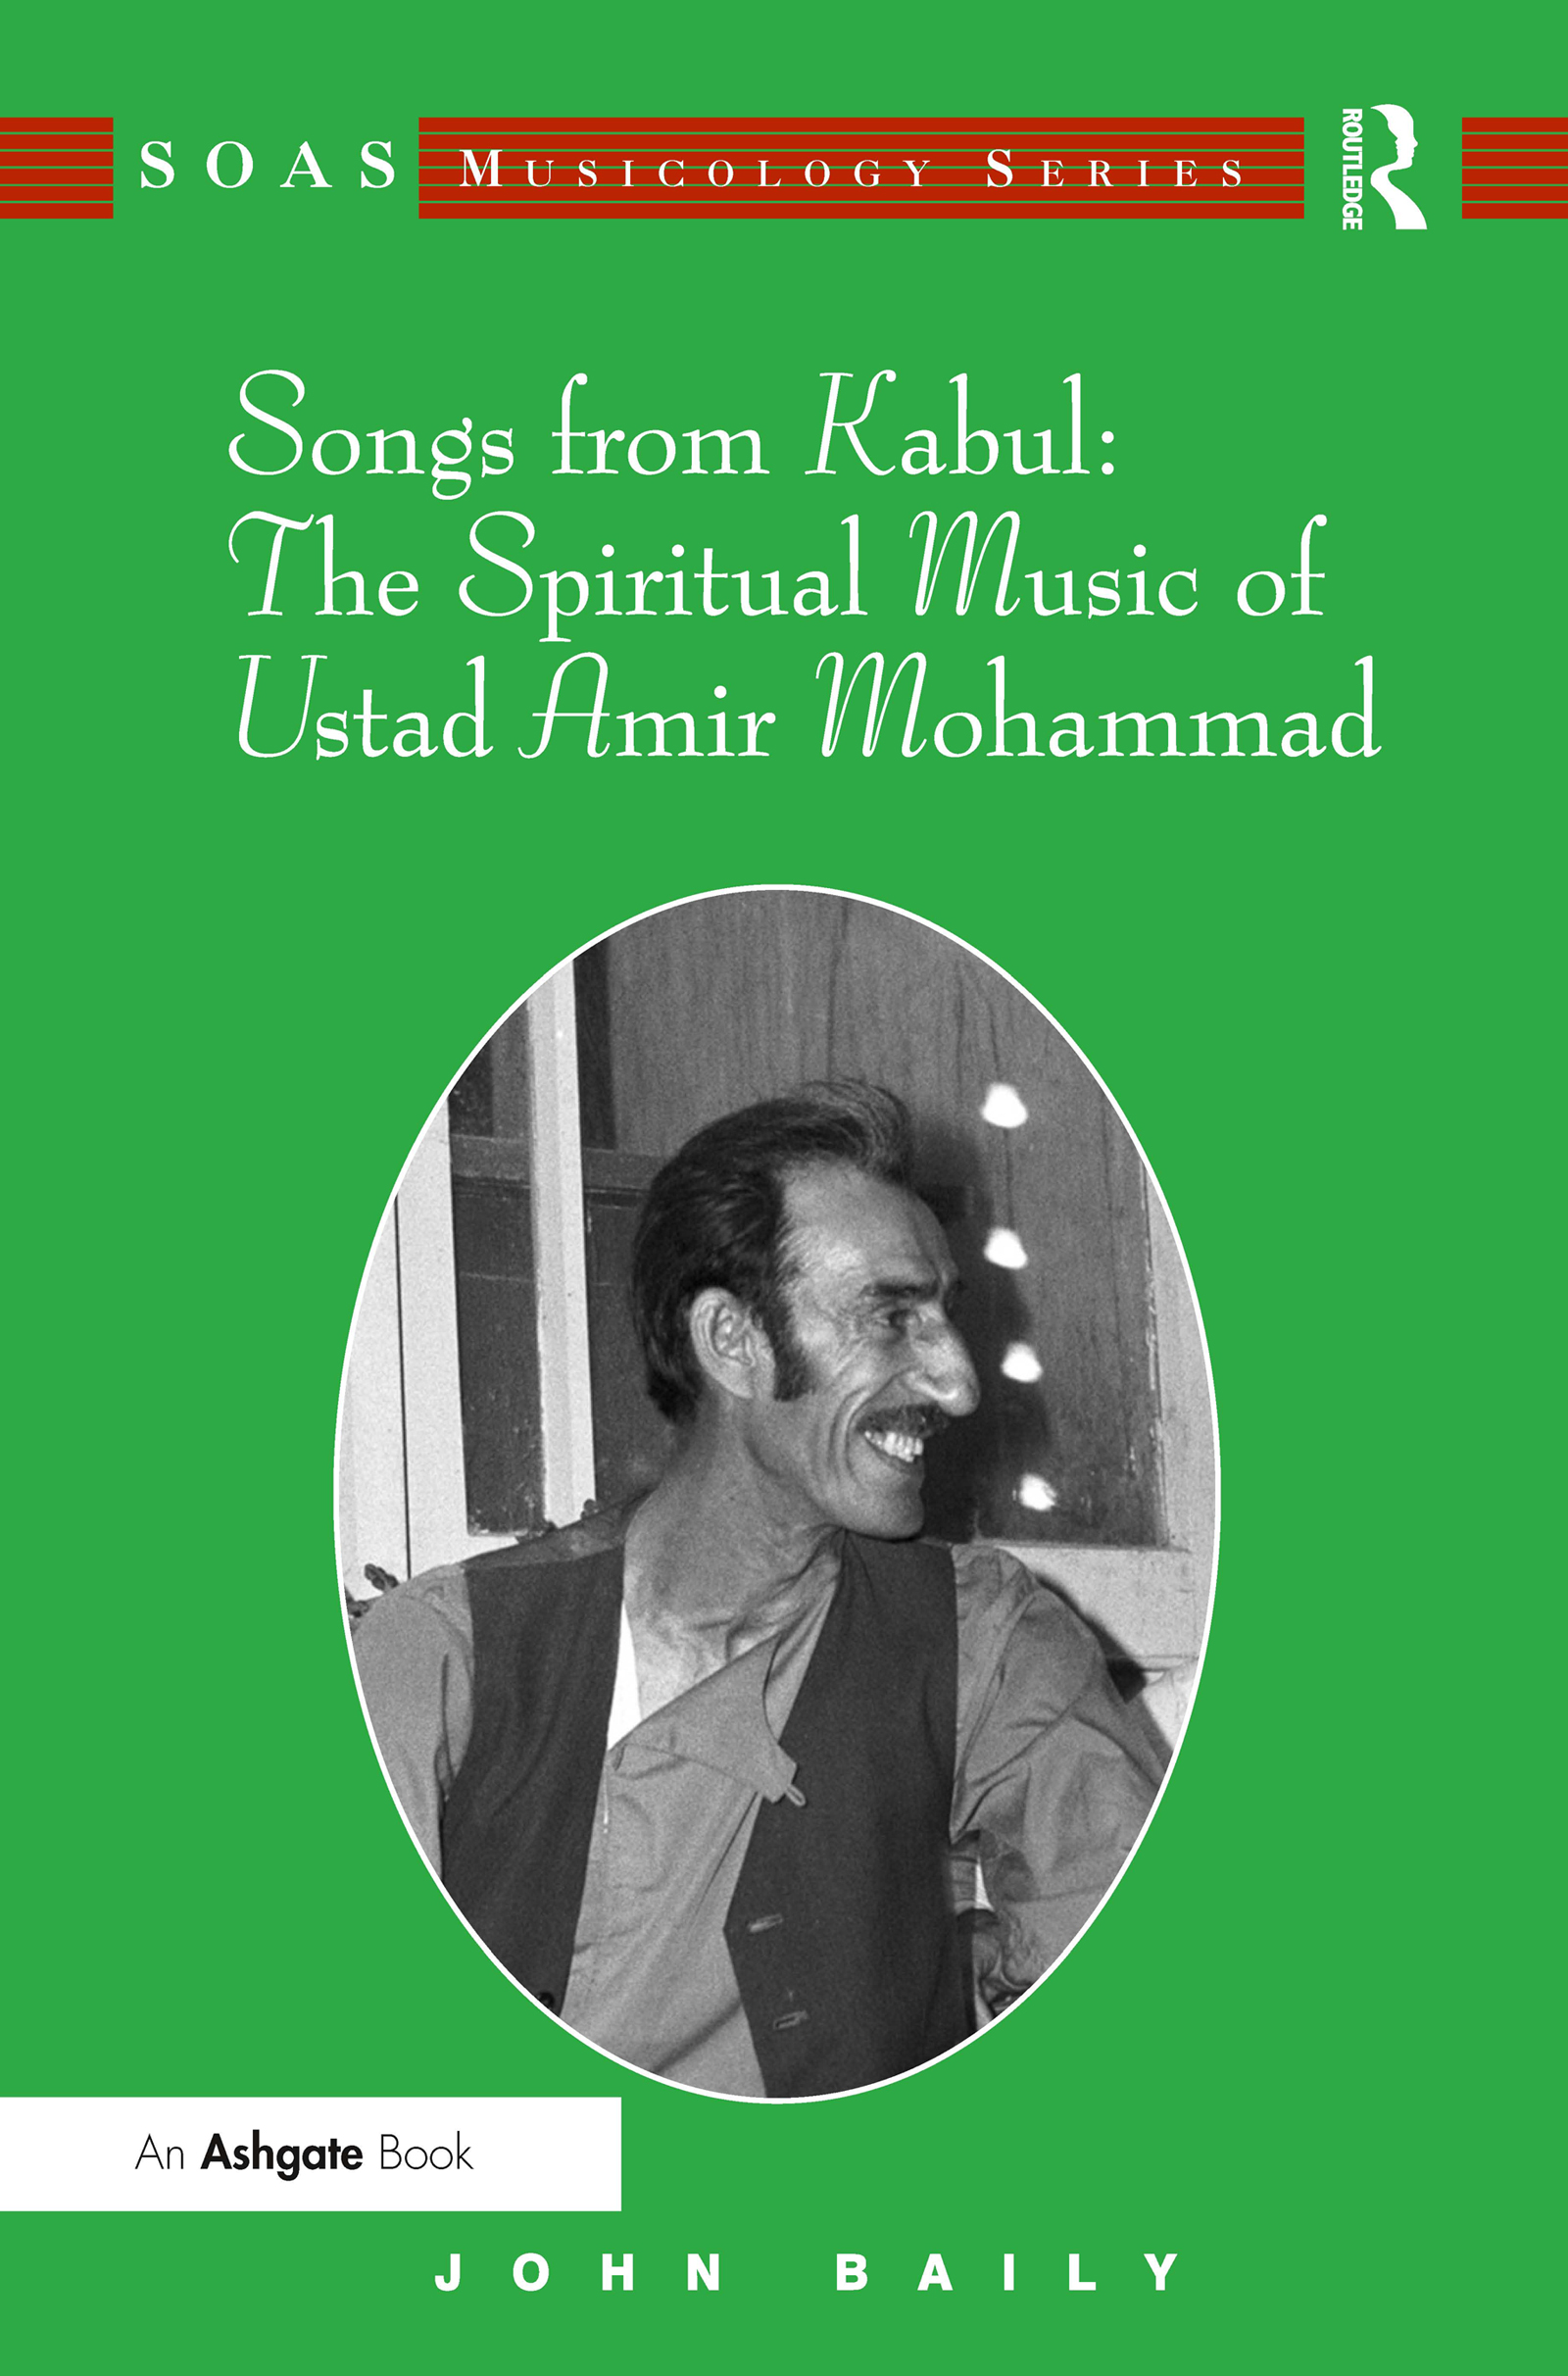 Songs from Kabul: The Spiritual Music of Ustad Amir Mohammad